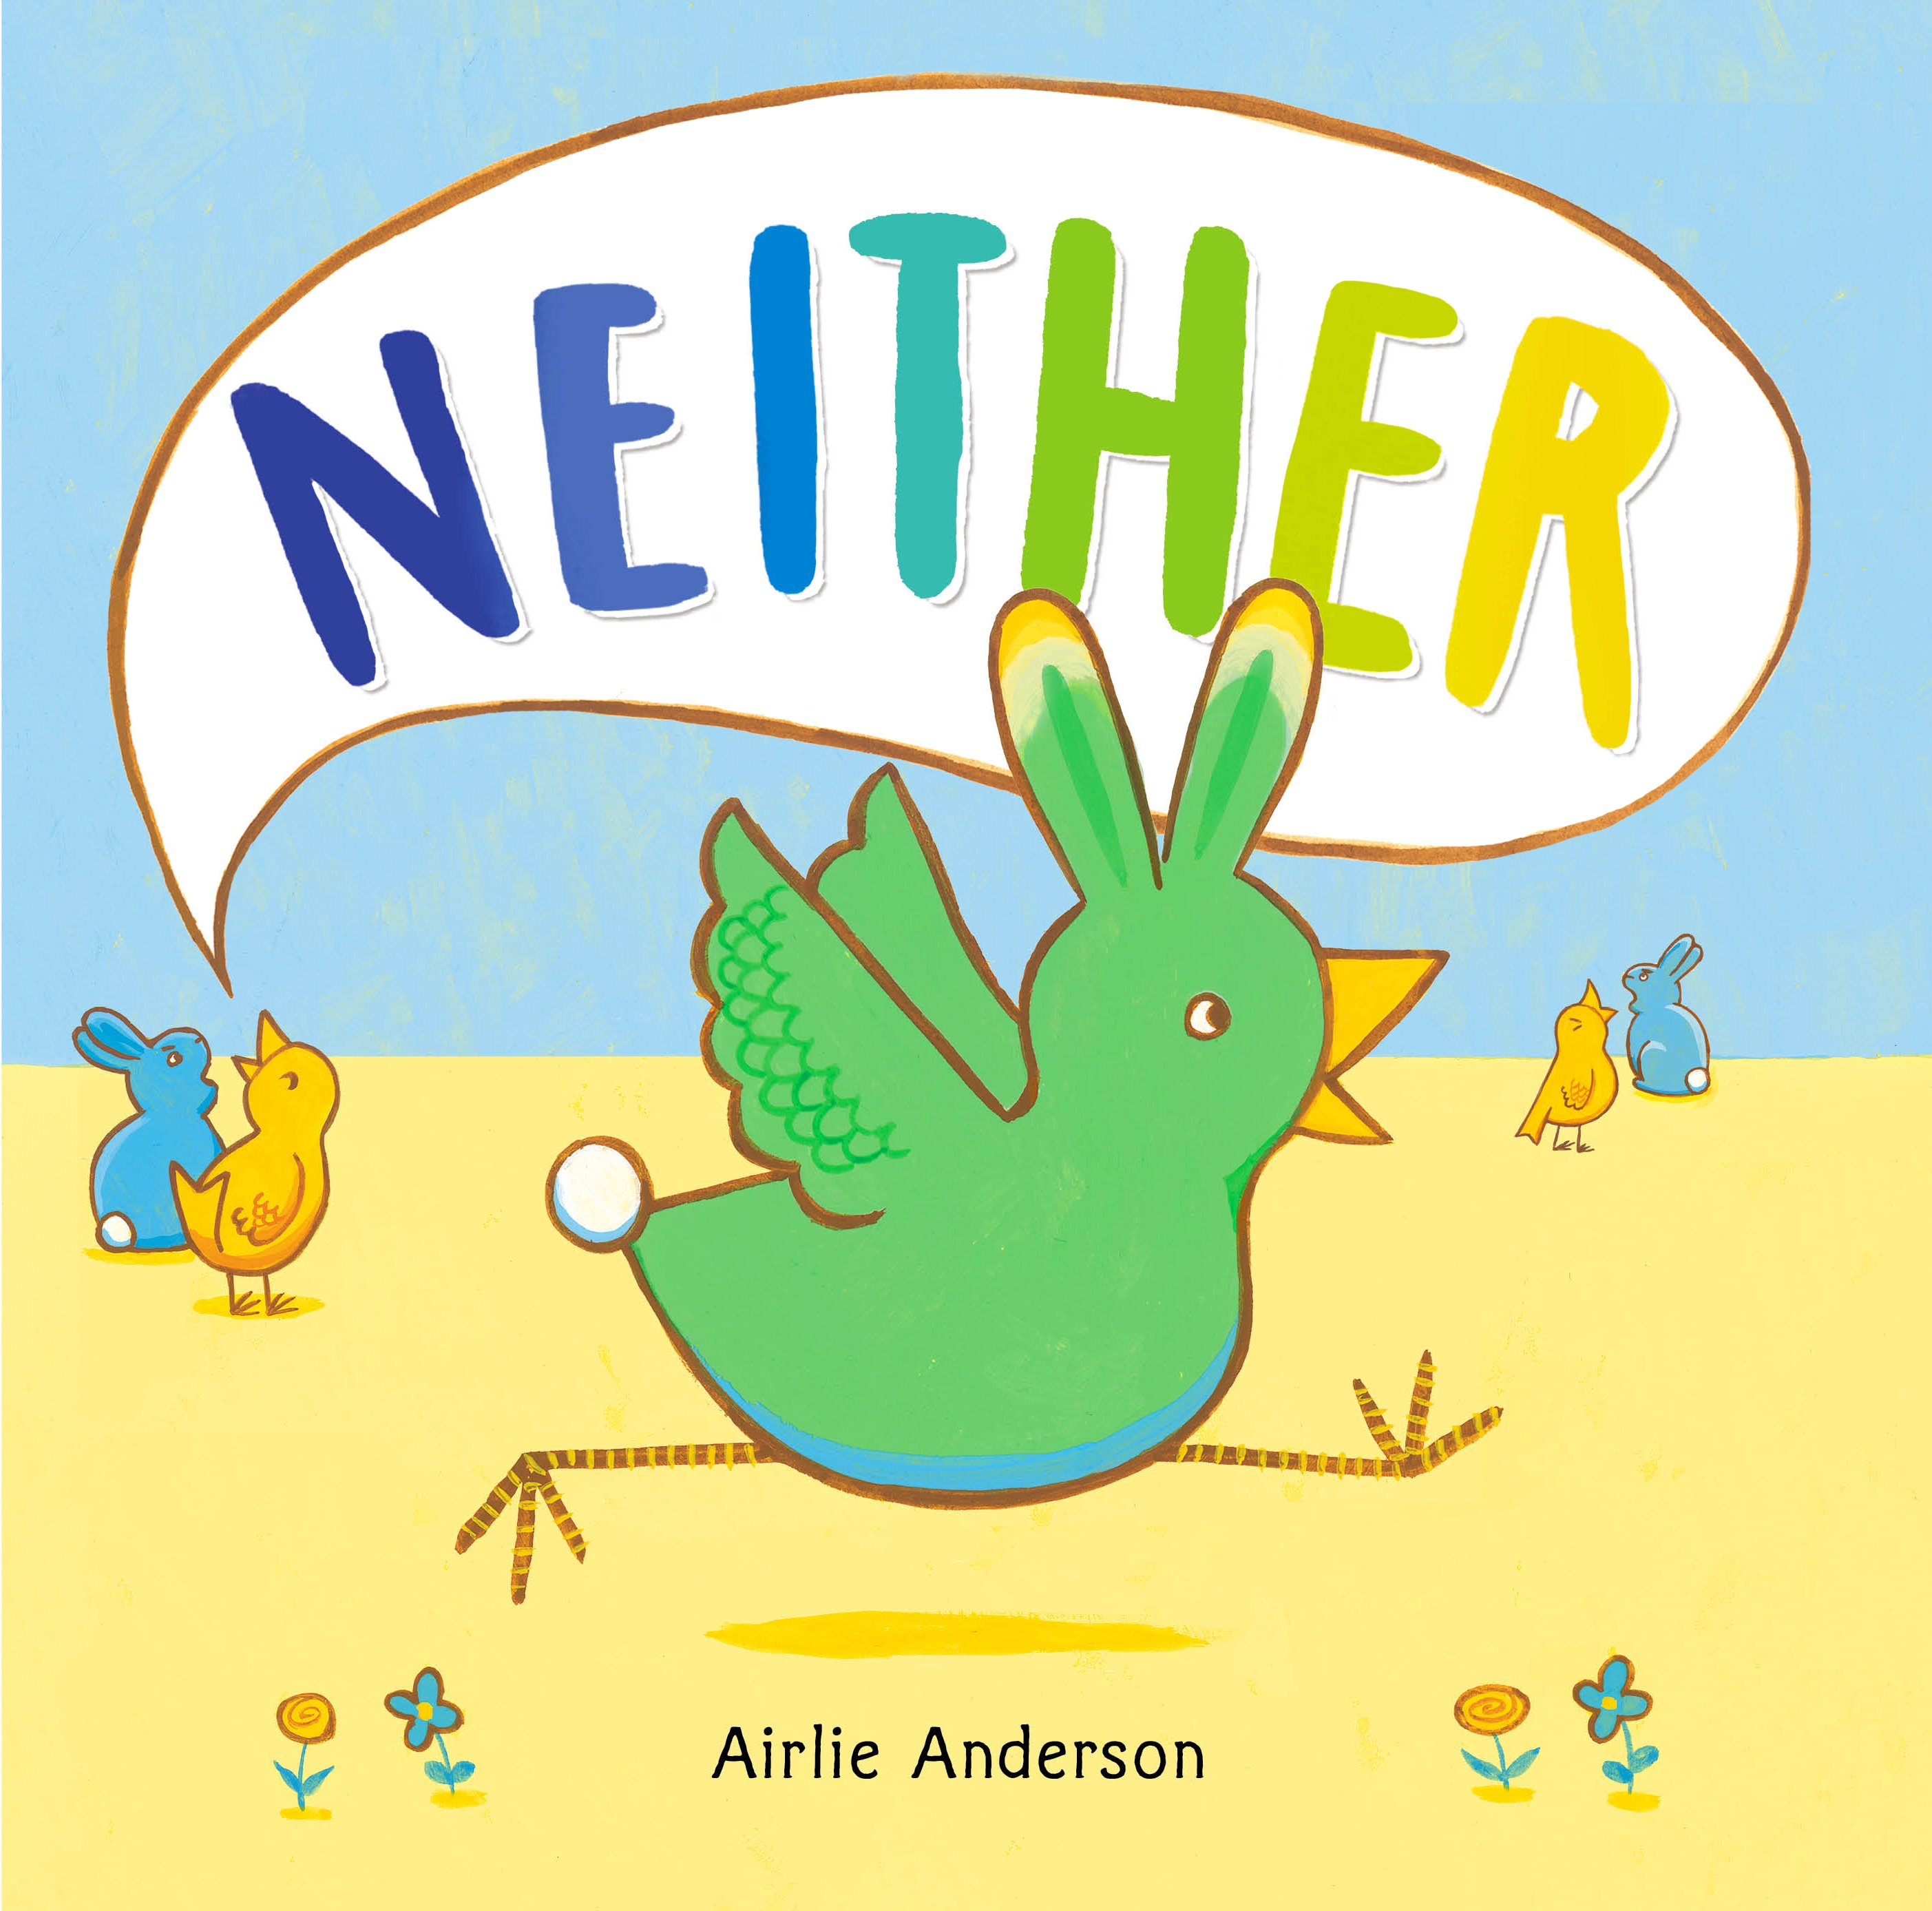 Sunday Story Time with Airlie Anderson (Author & Illustrator of NEITHER)